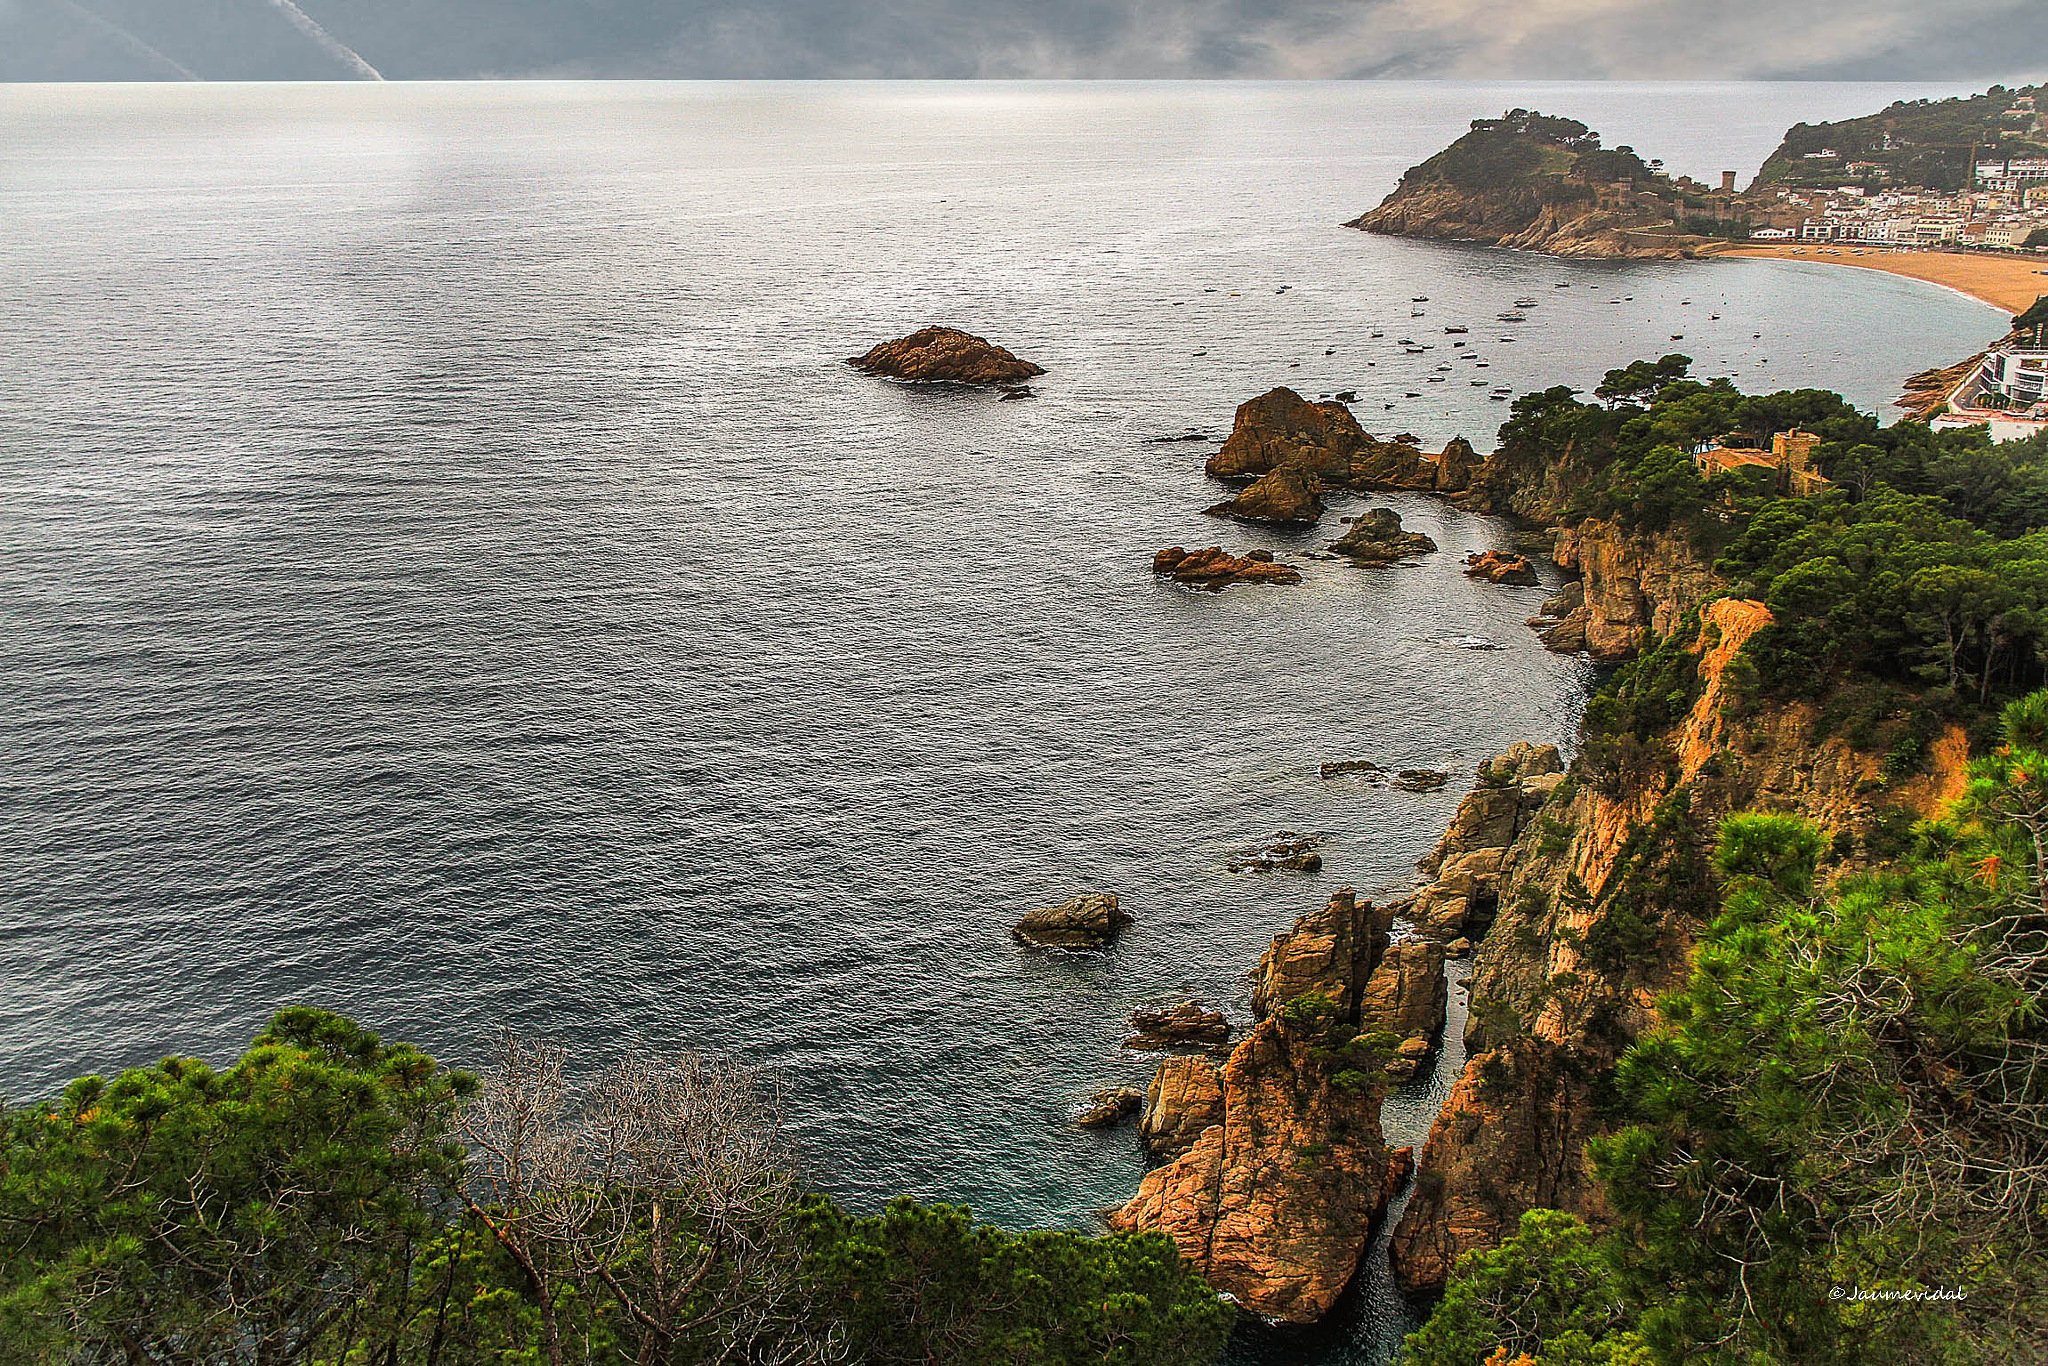 Corner of the Costa Brava with Tossa de Mar in the background by JaumeVidal